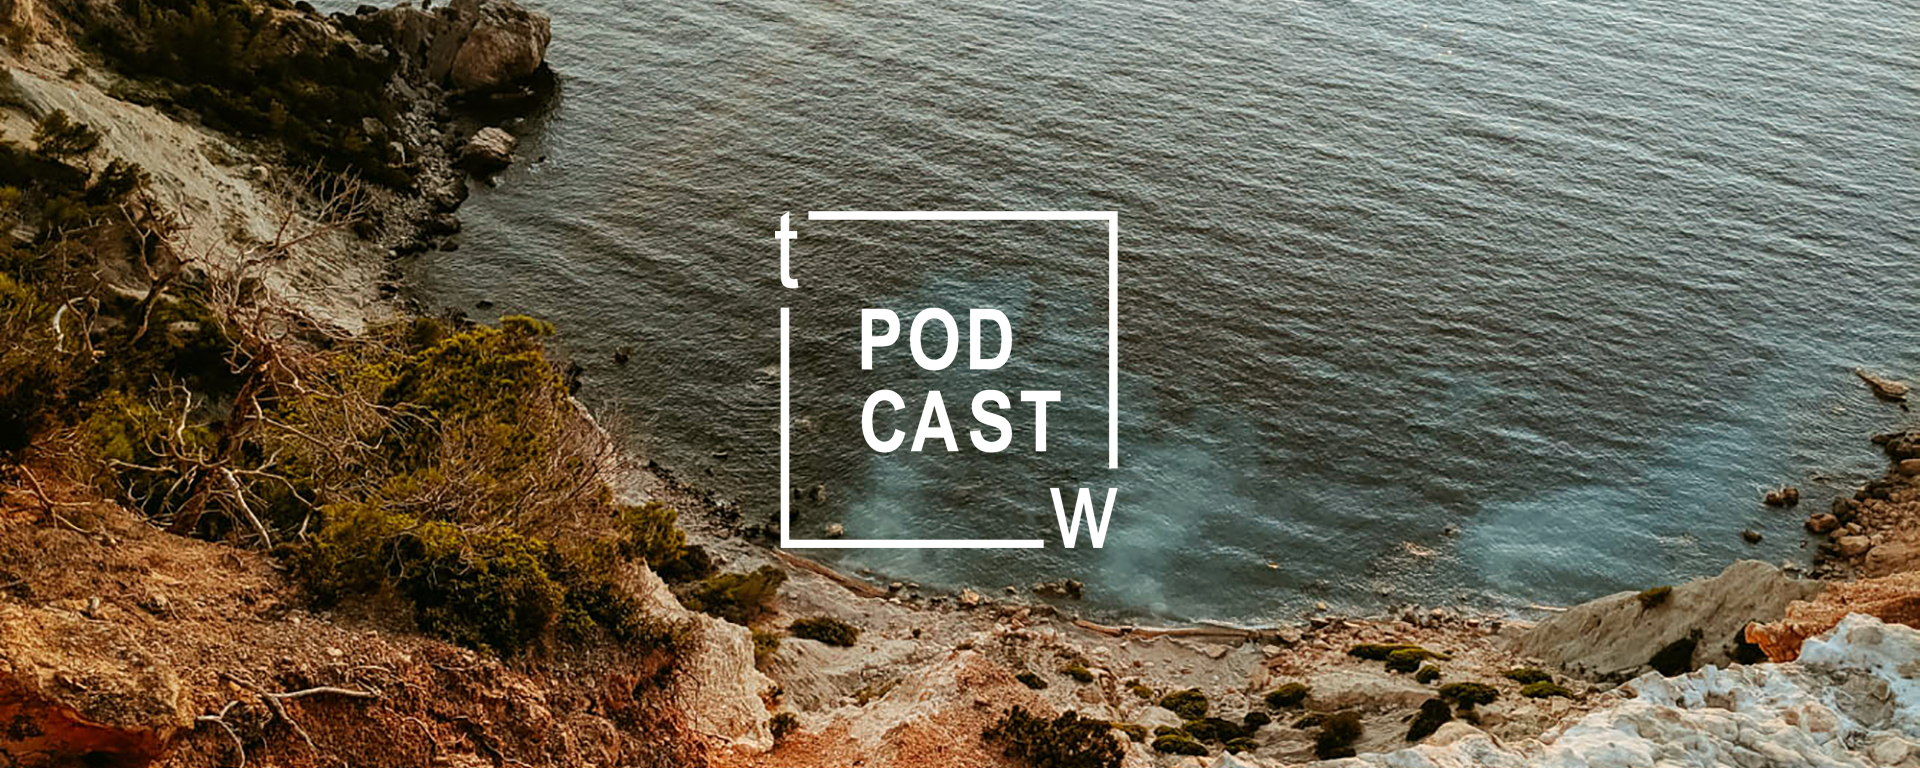 5-trend-destinations-2020_Podcast_tunes&wings